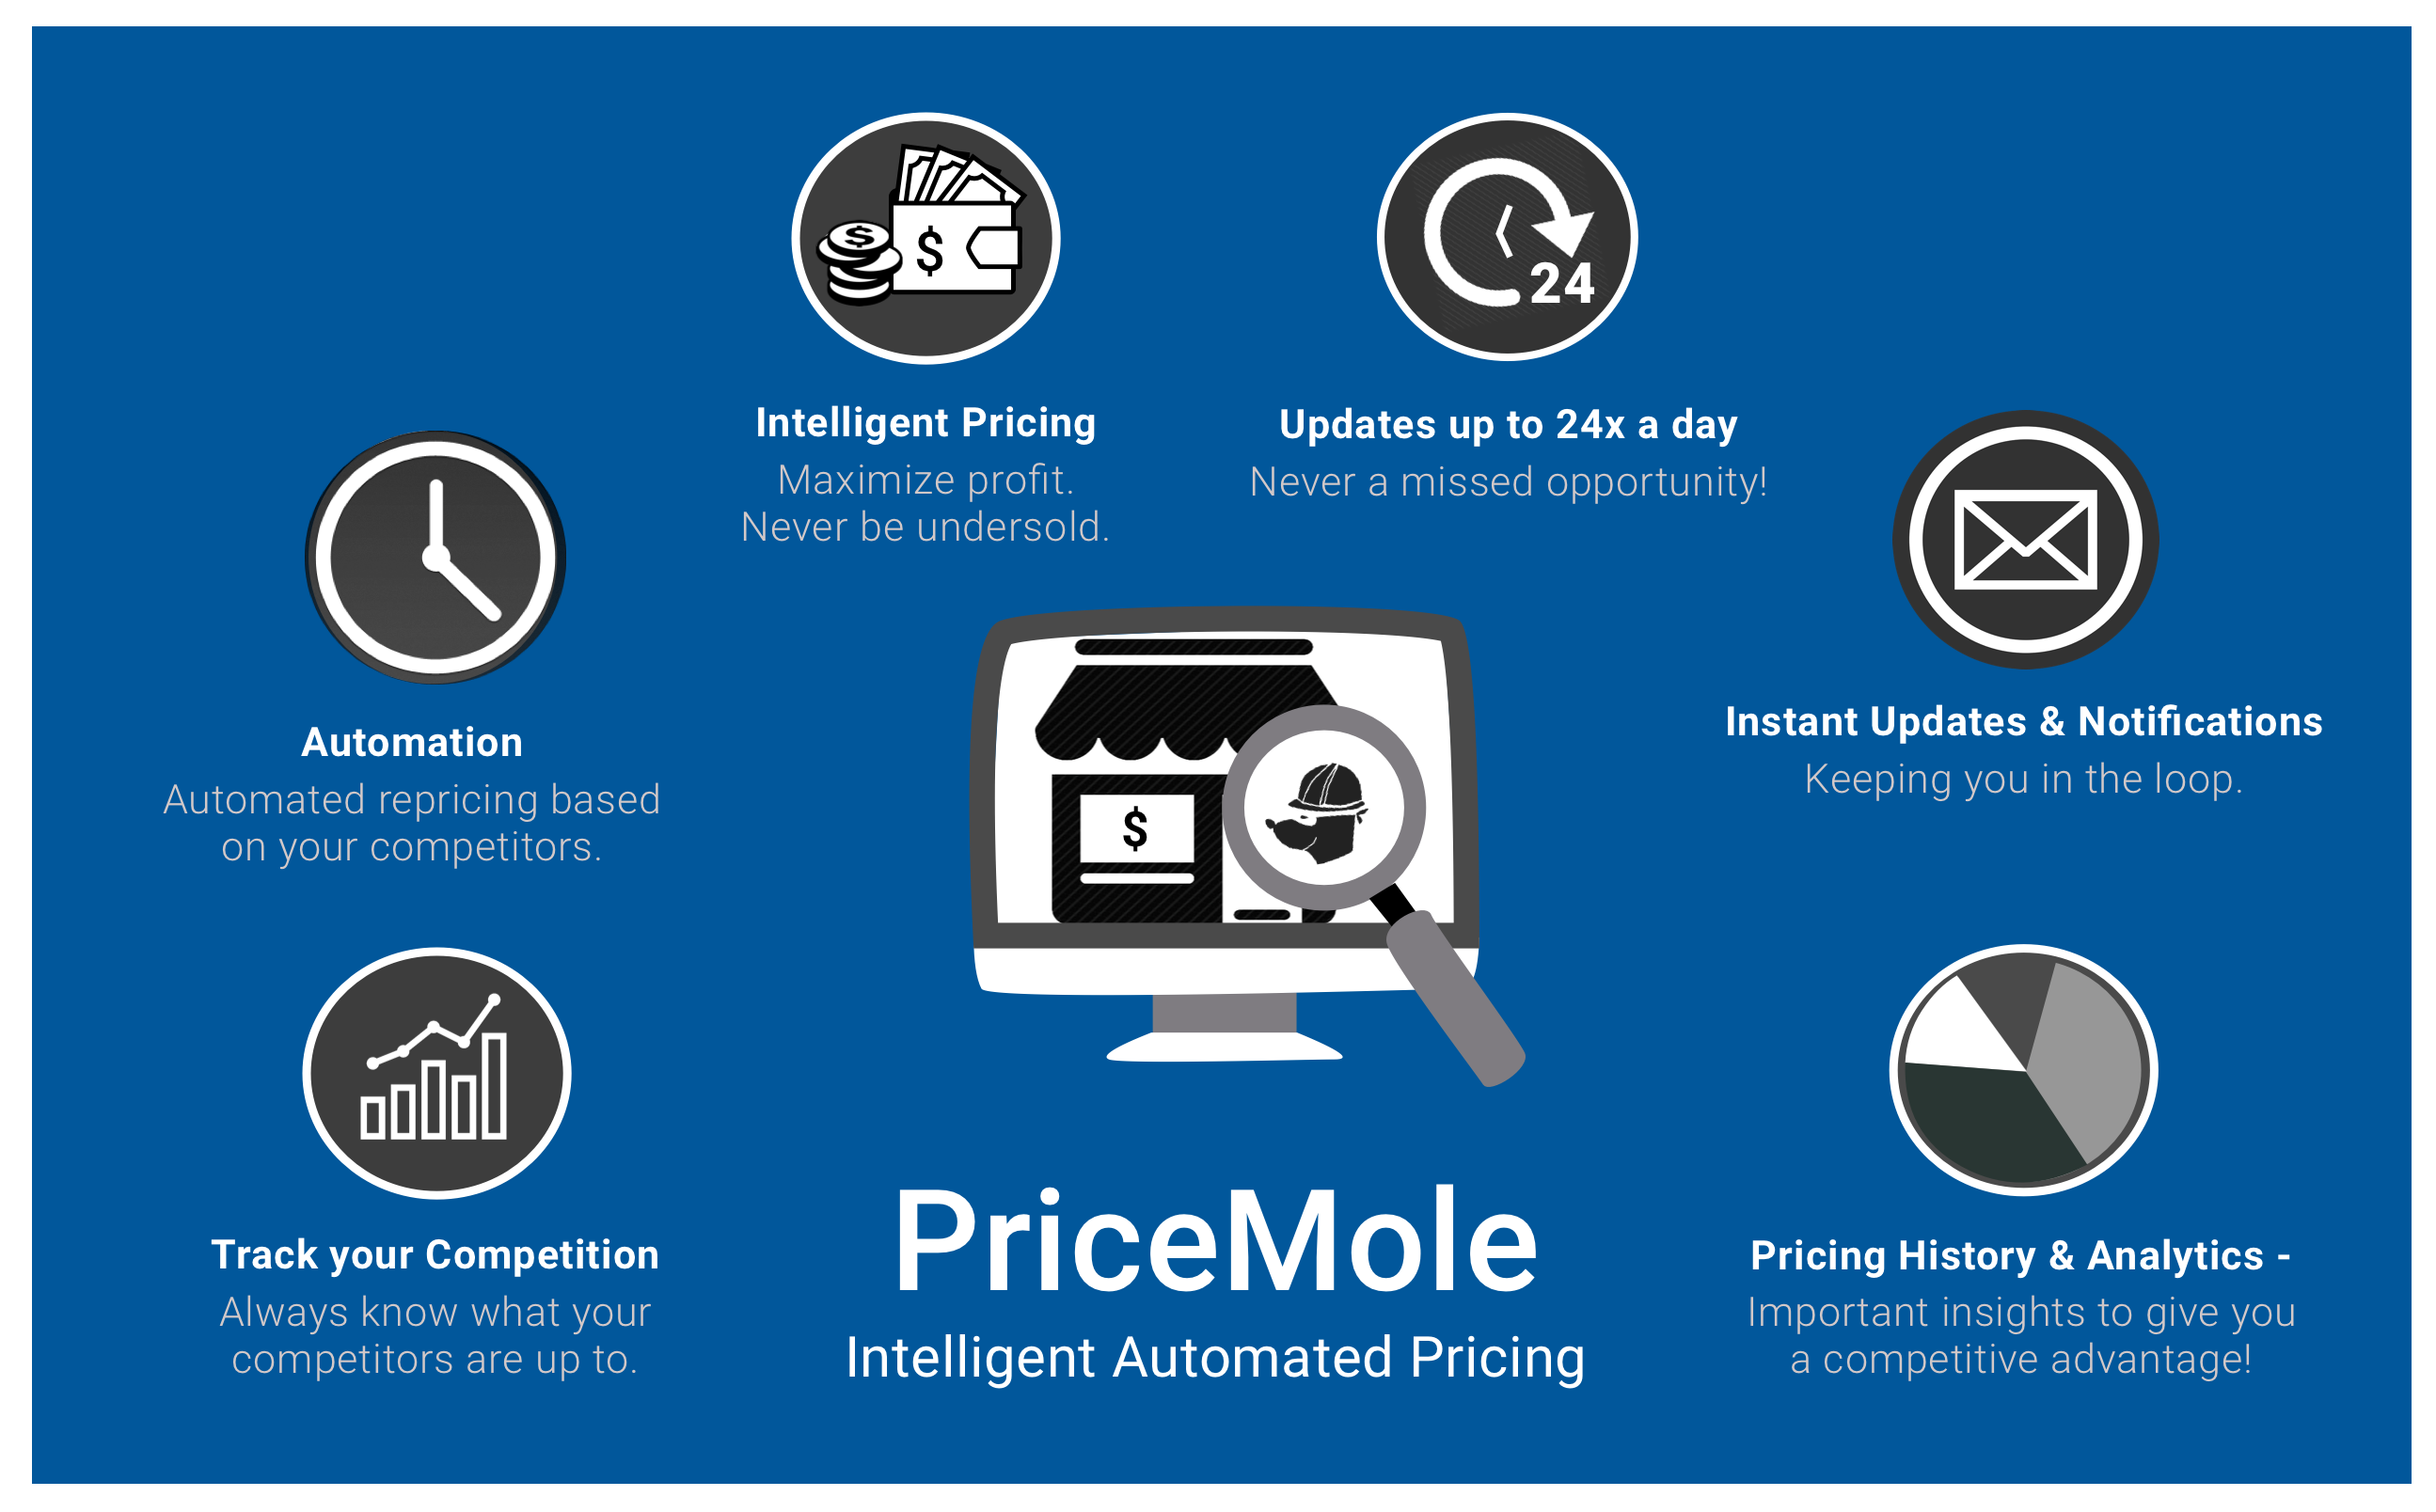 Pricemole +intelligent+automated+tracking